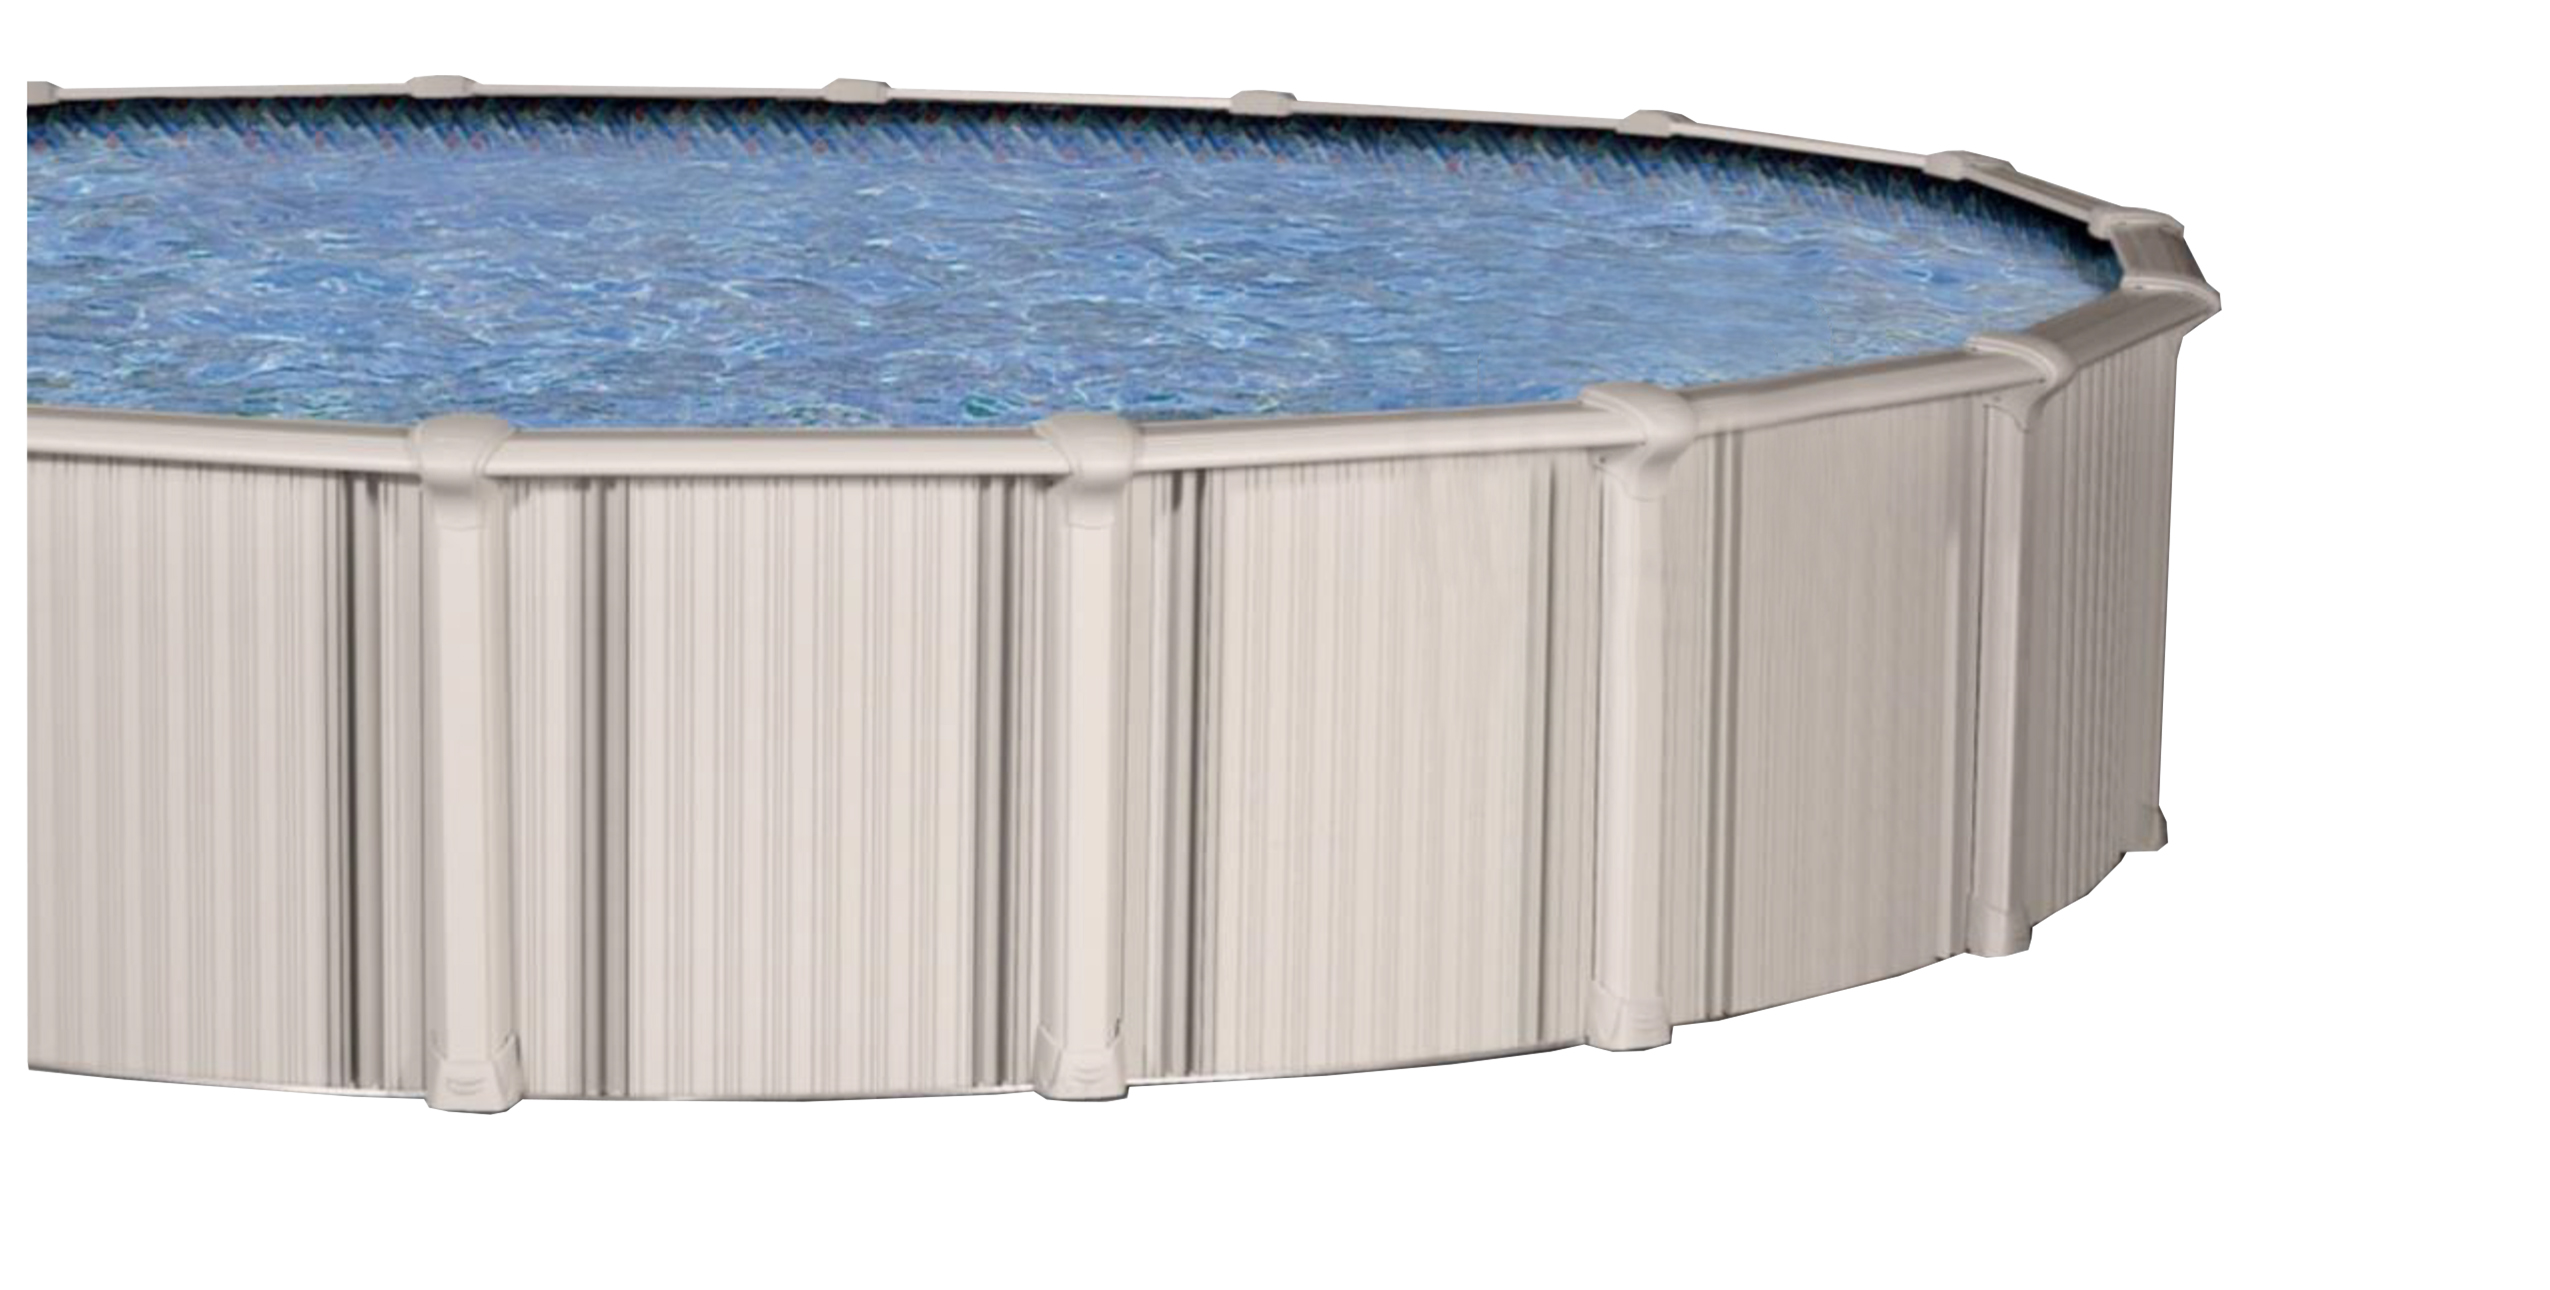 ALUMINUM POOLS